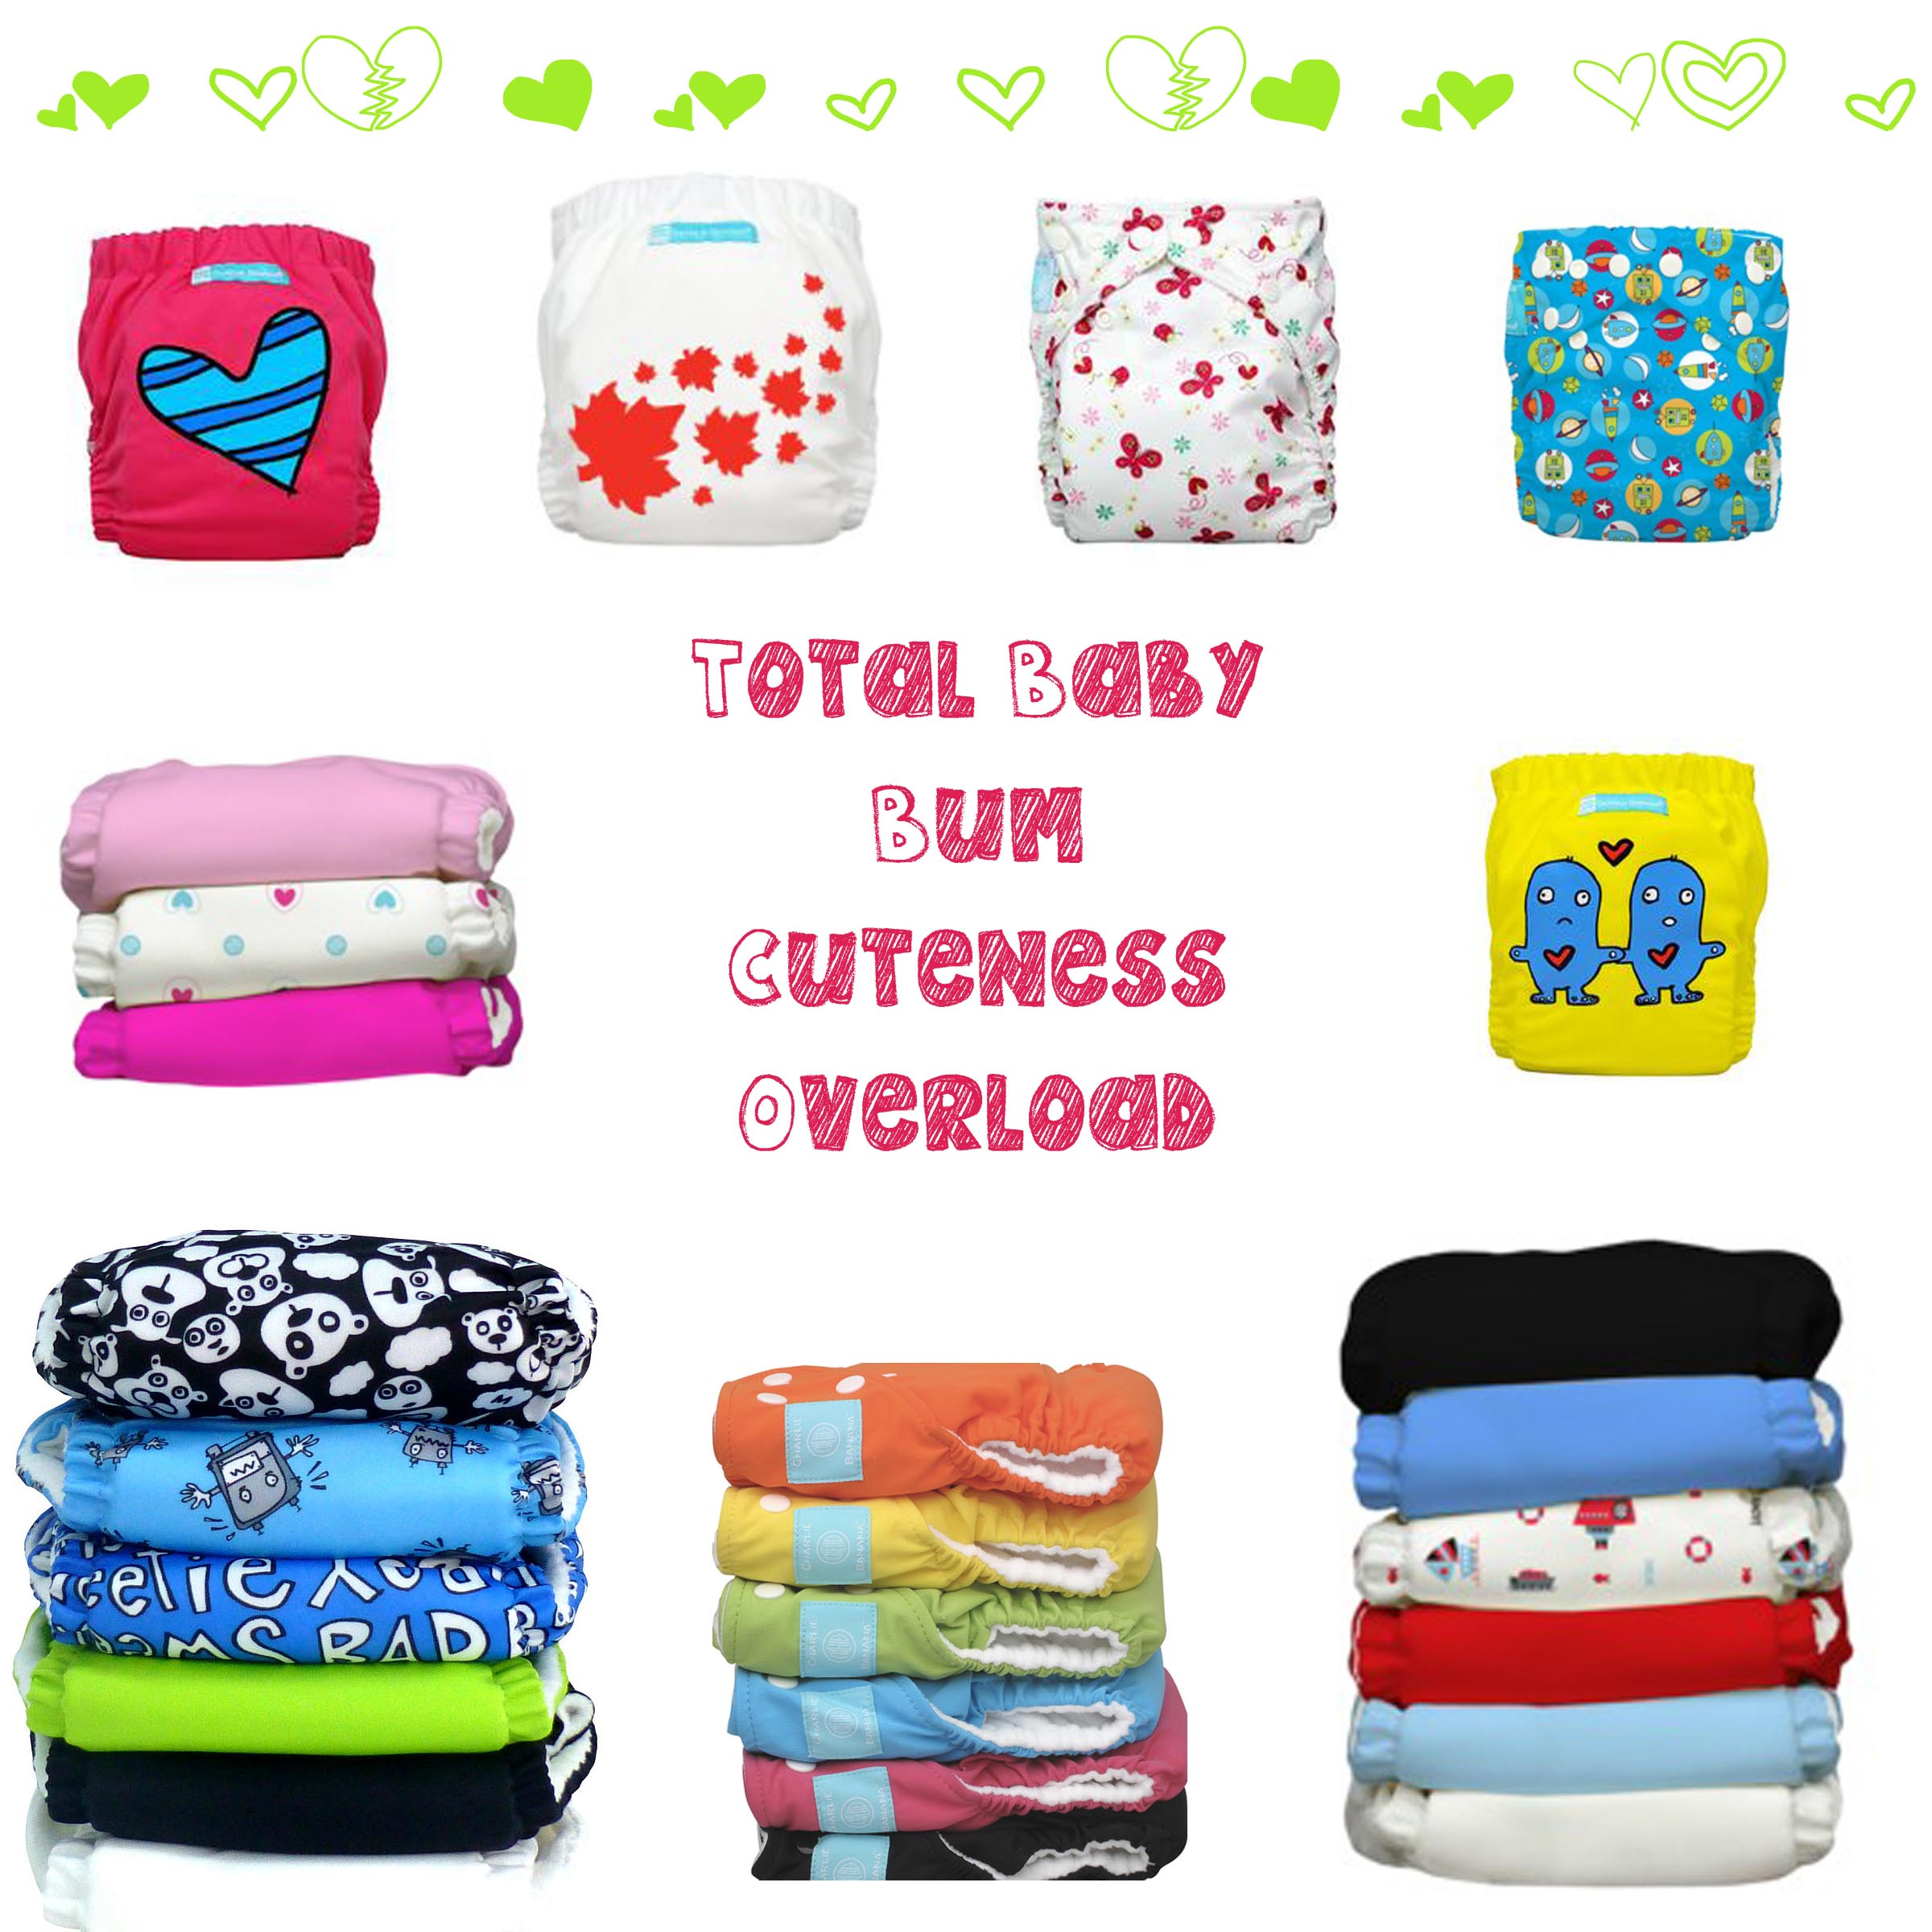 Why I Love Disposable Diapers But Why I'm Also Considering The Switch